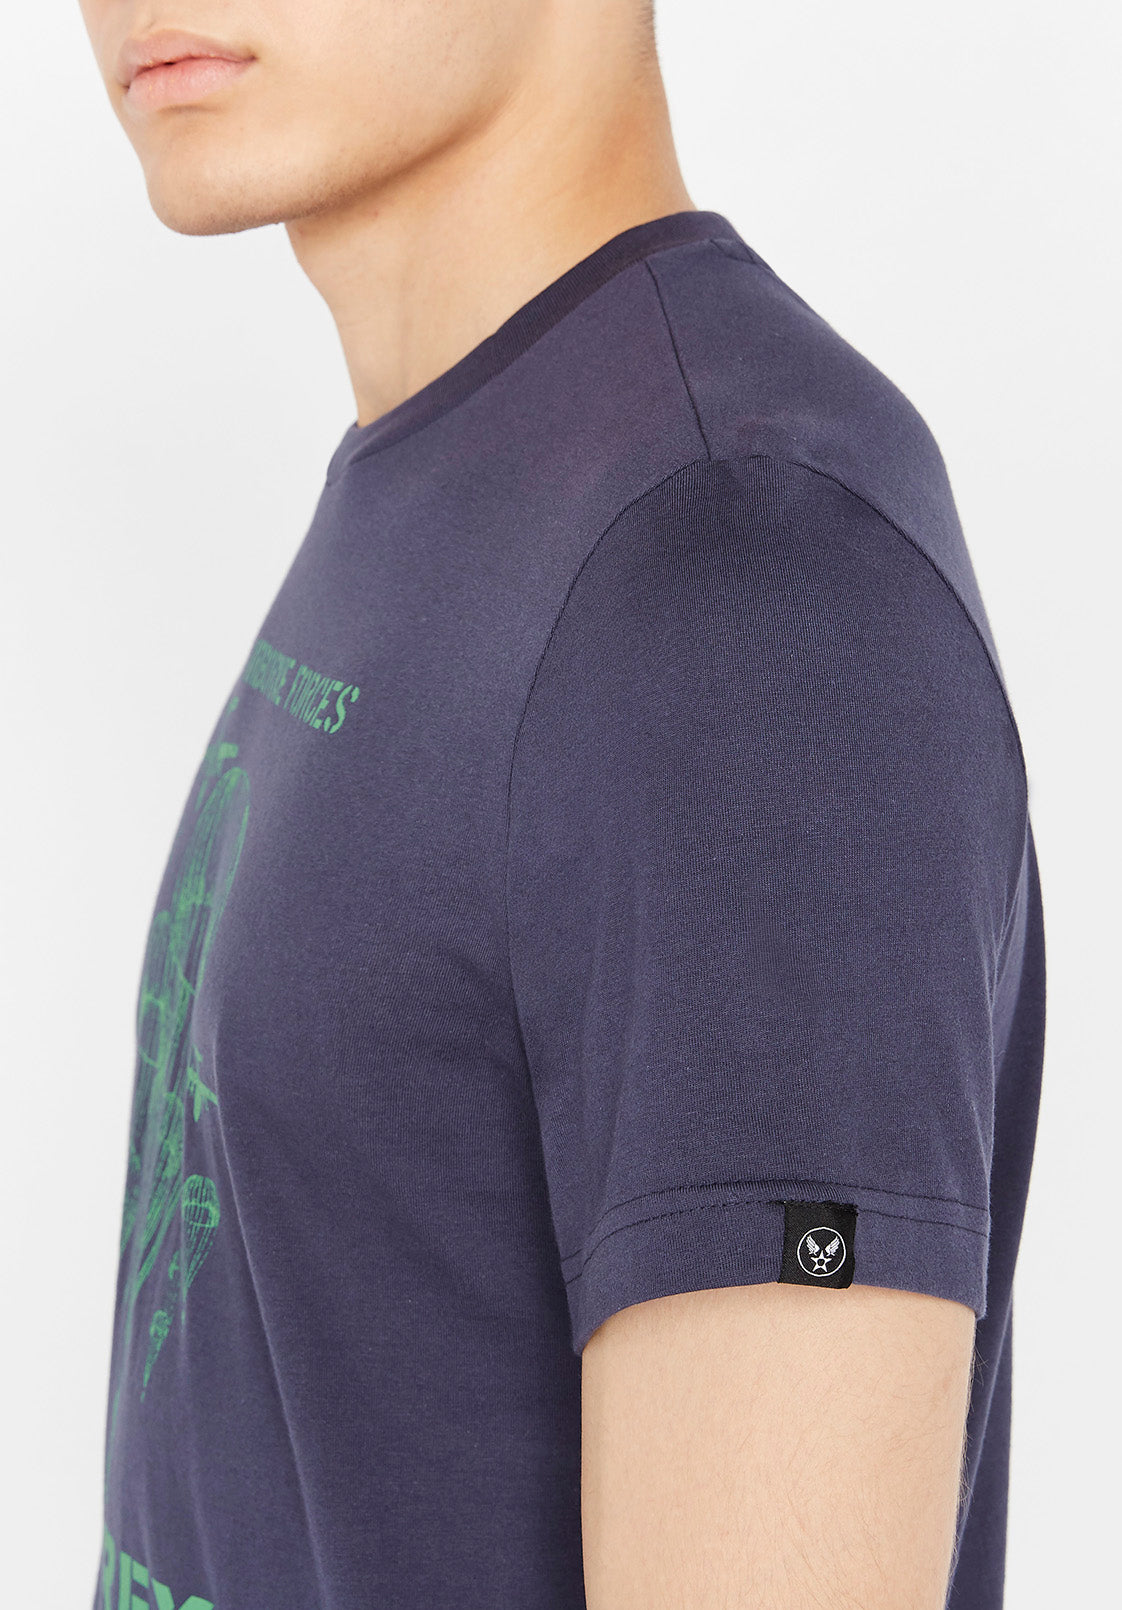 Detailed view of Avirex Wingstar label on blue t-shirt